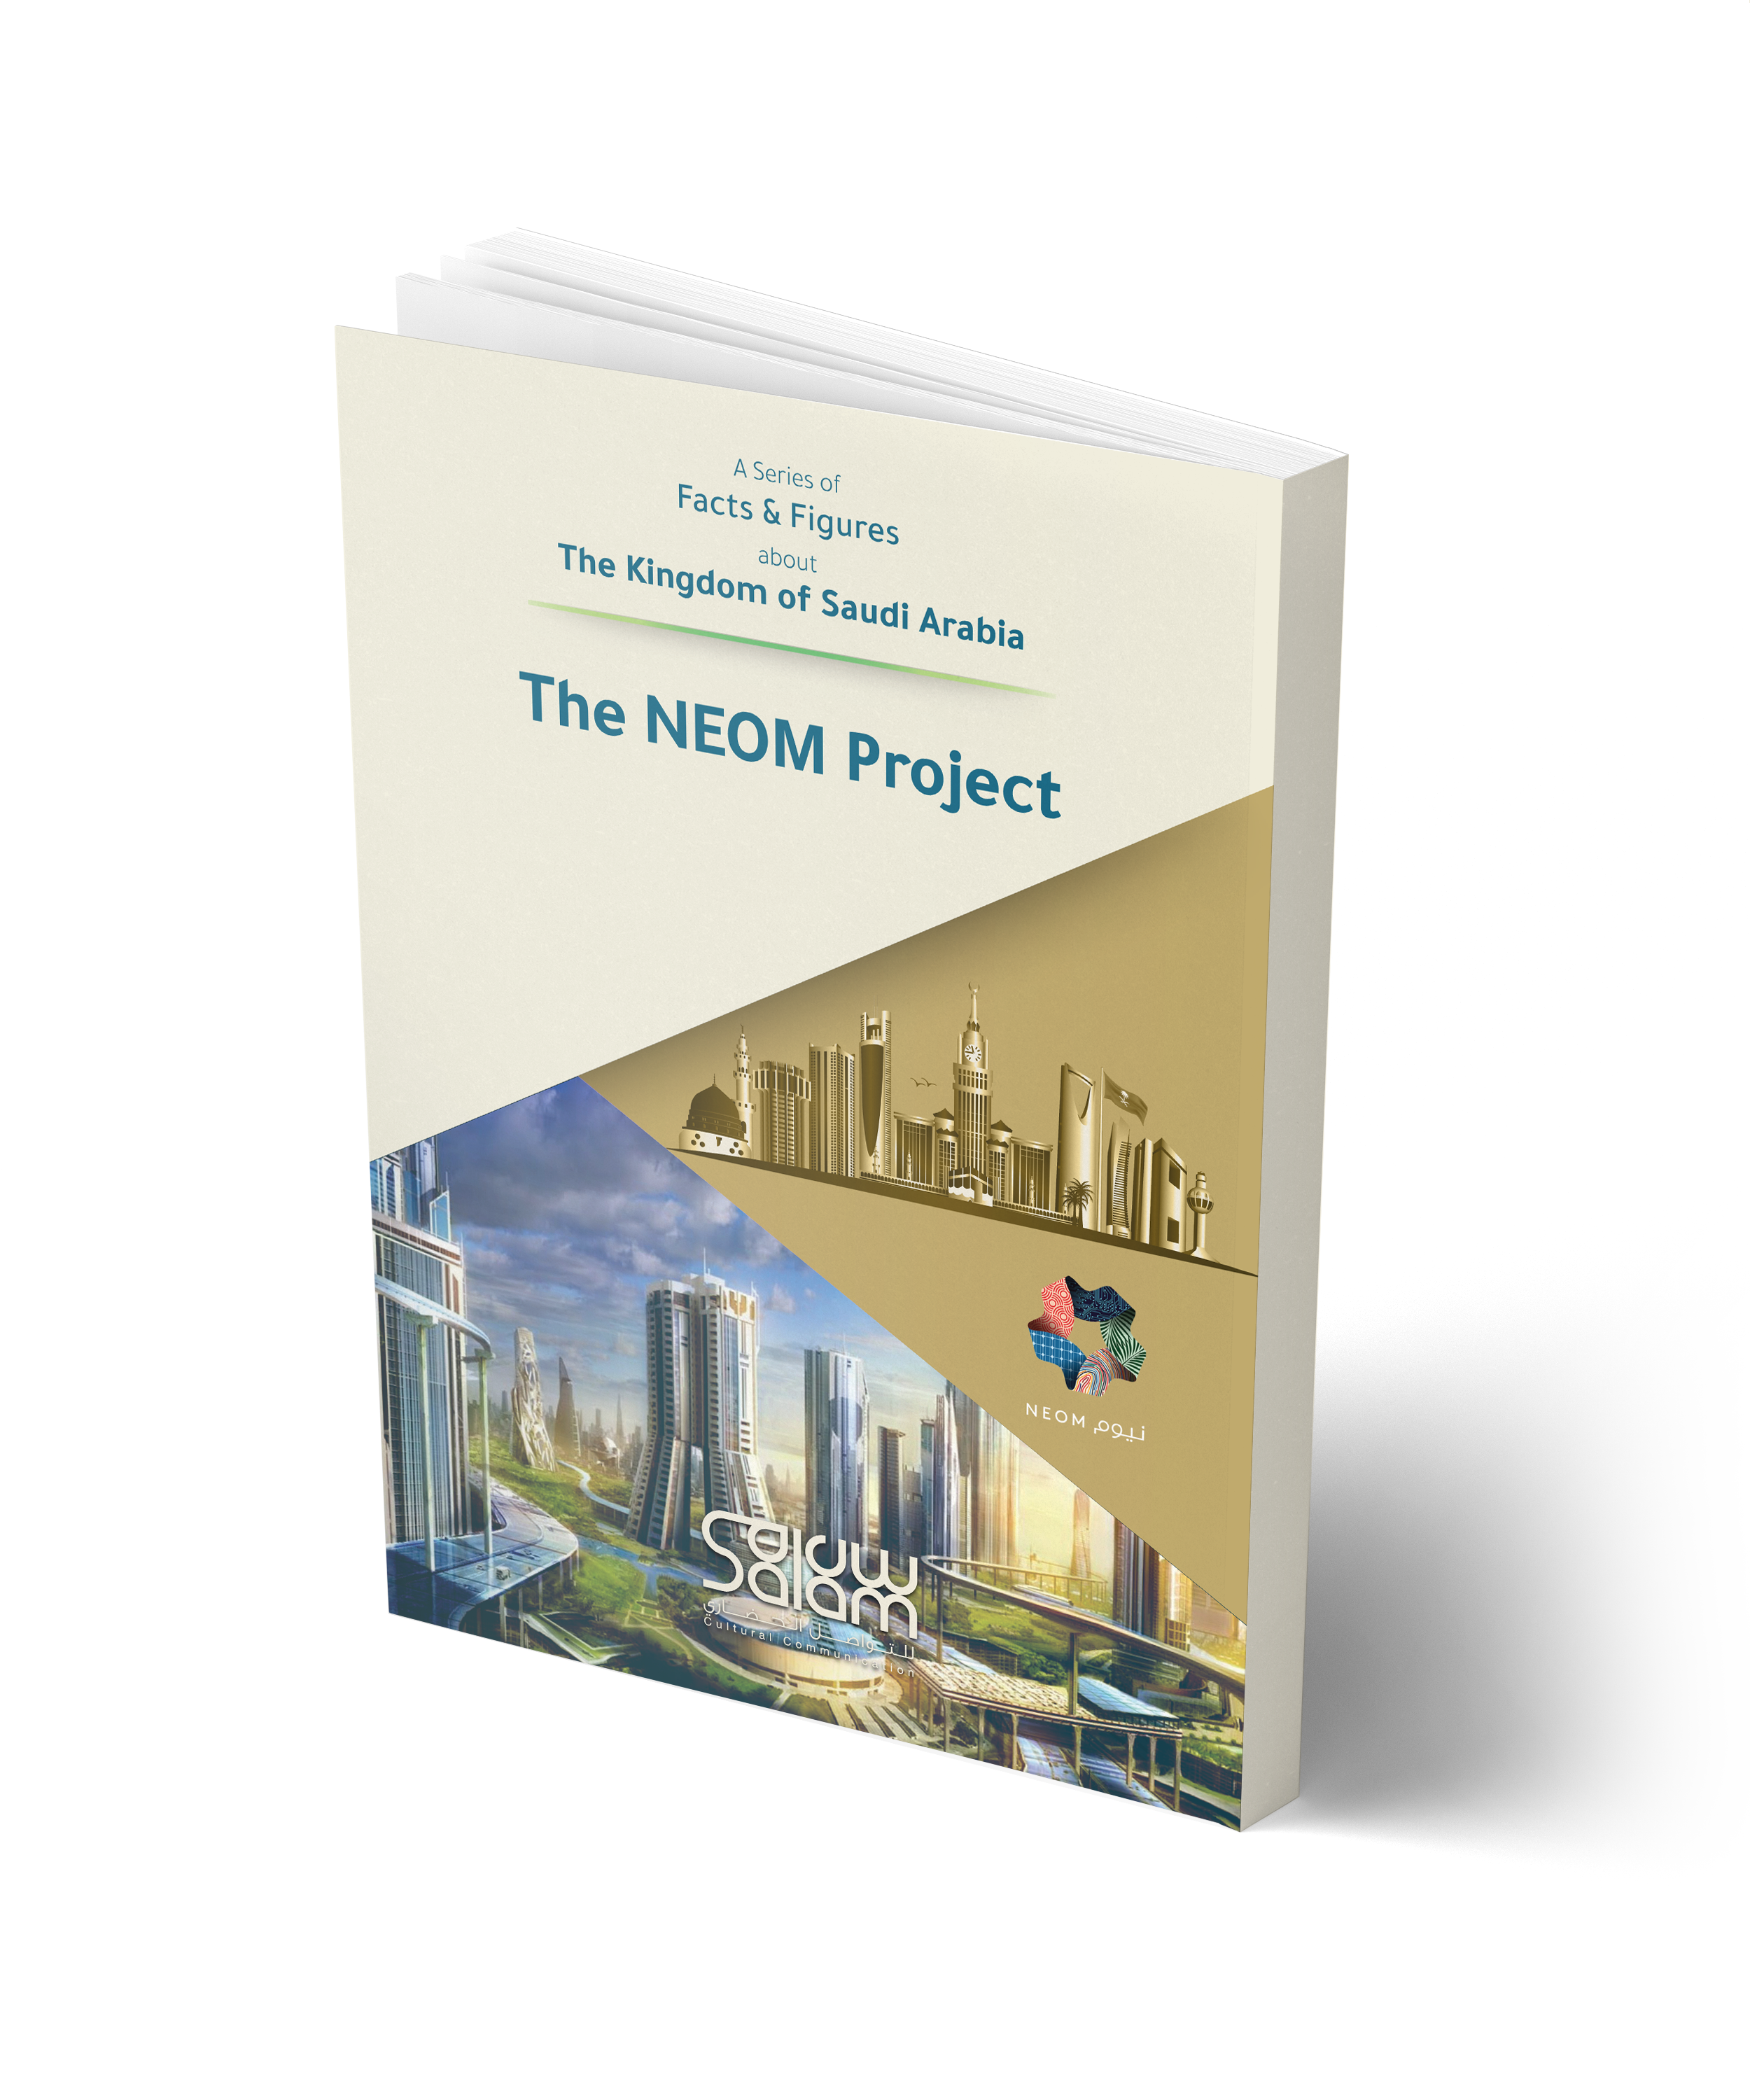 NEOM Project